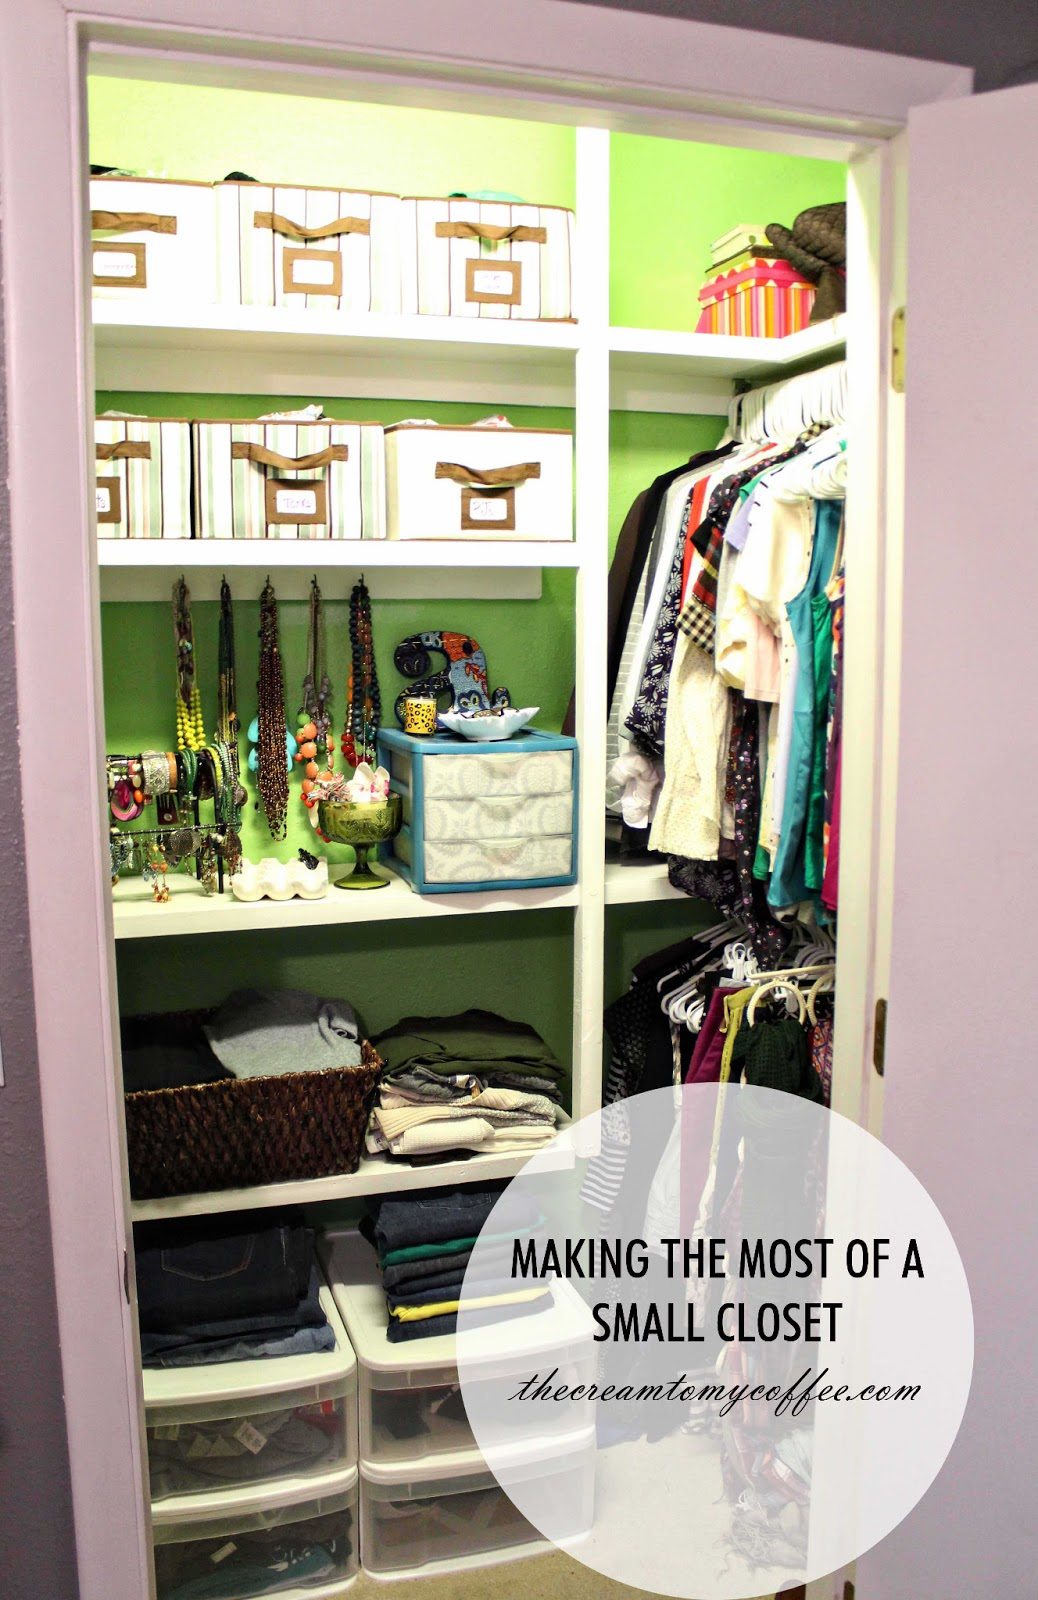 Tiny Closet Ideas Making The Most Of A Small Closet | The Cream To My Coffee